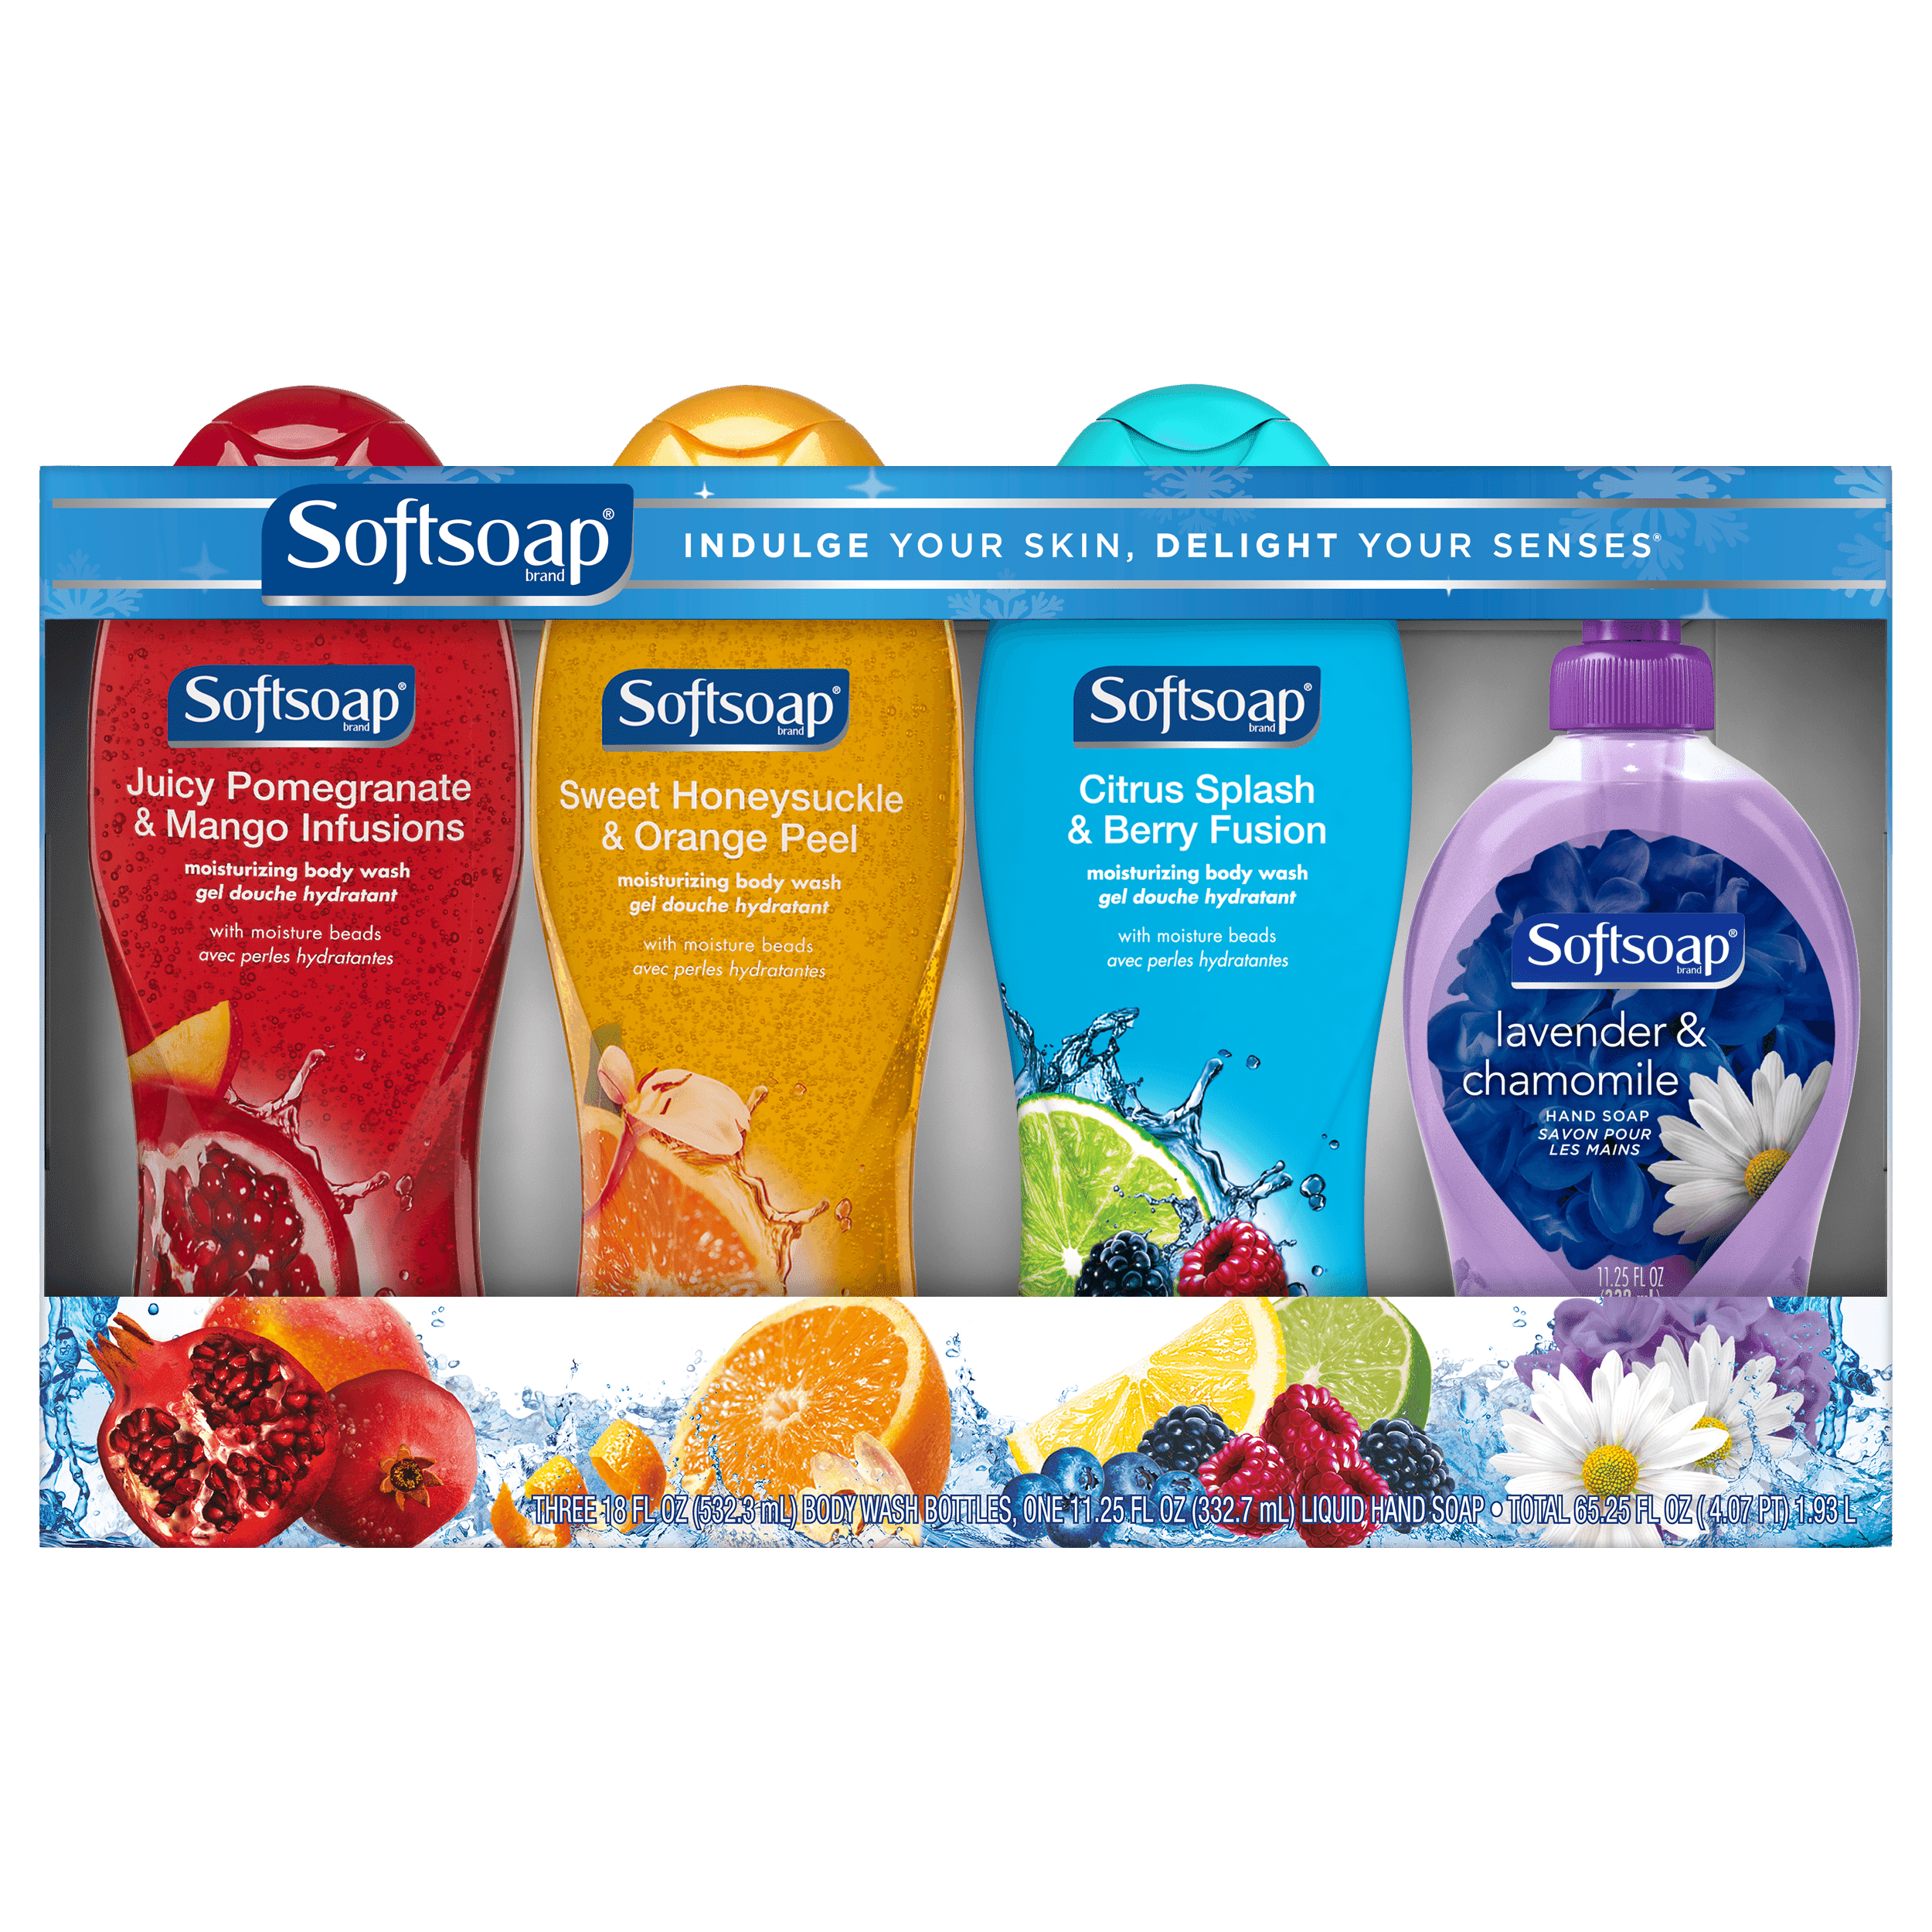 Softsoap Fragrance Body Wash & Liquid Hand Soap Gift Pack - 3 Body Washes, 1 Hand Soap